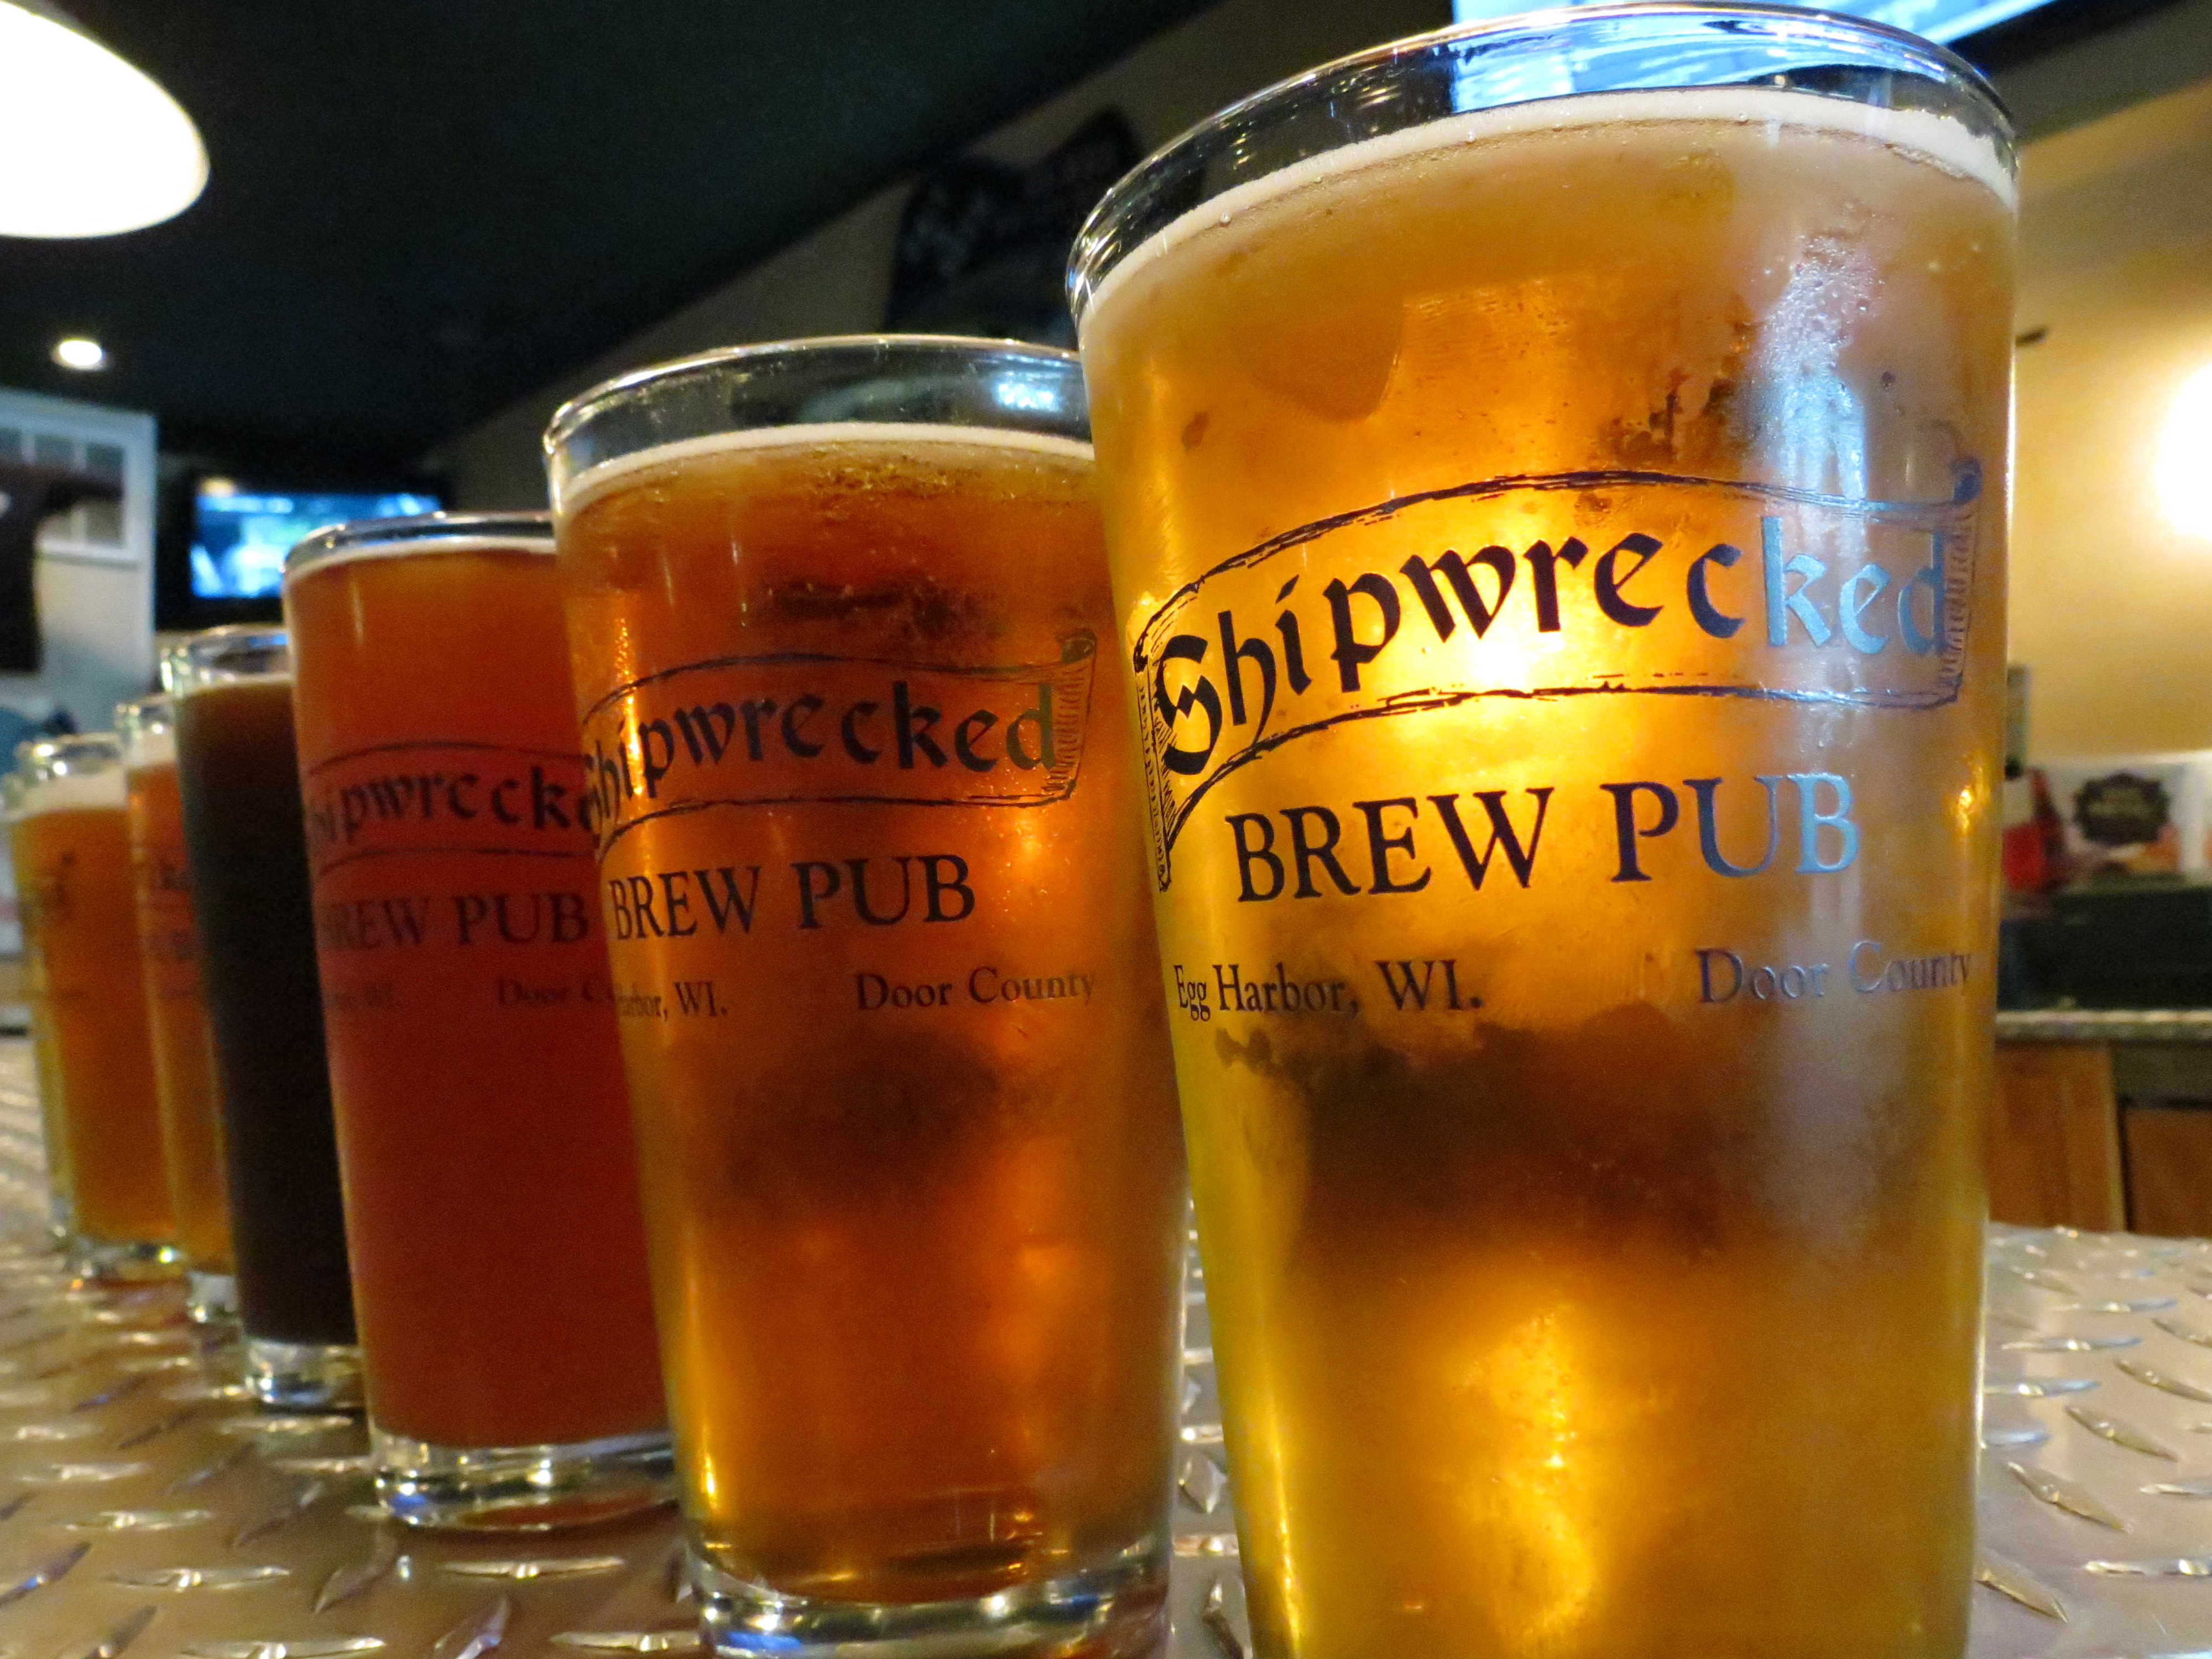 shipwrecked brew pub in downtown egg harbor